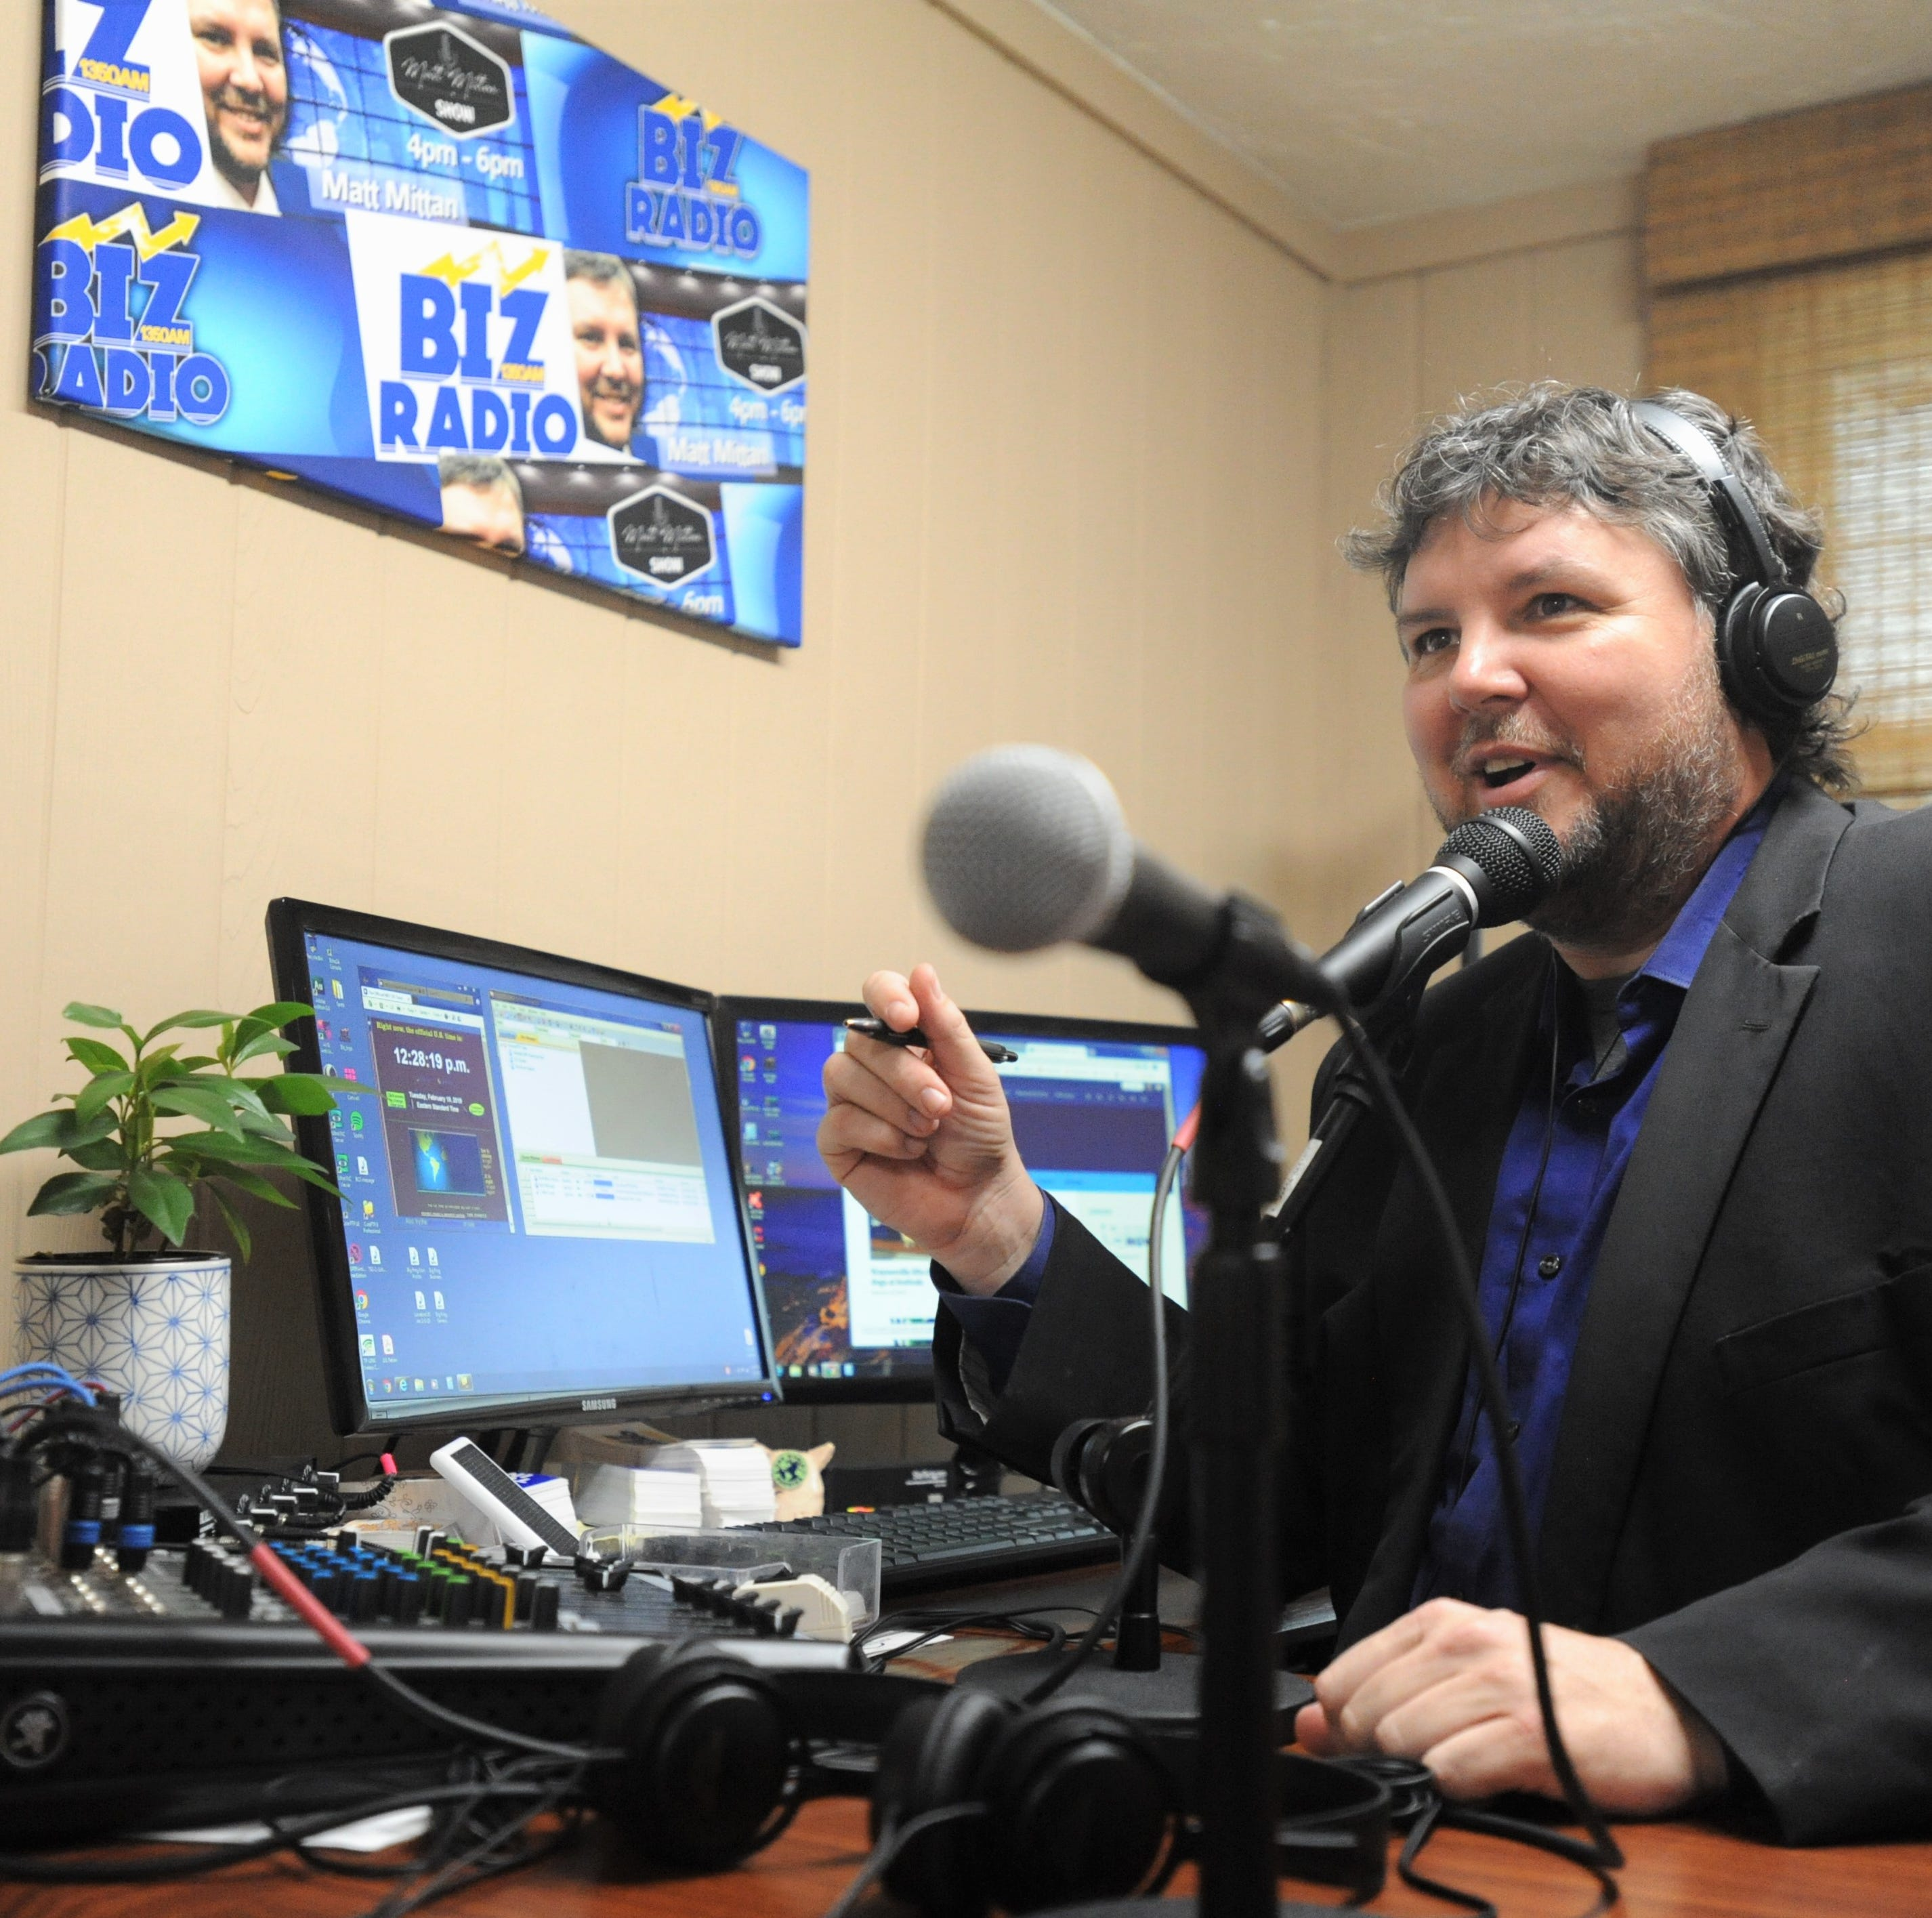 Broadcasting from Swannanoa, Matt Mittan is back at home on the airwaves